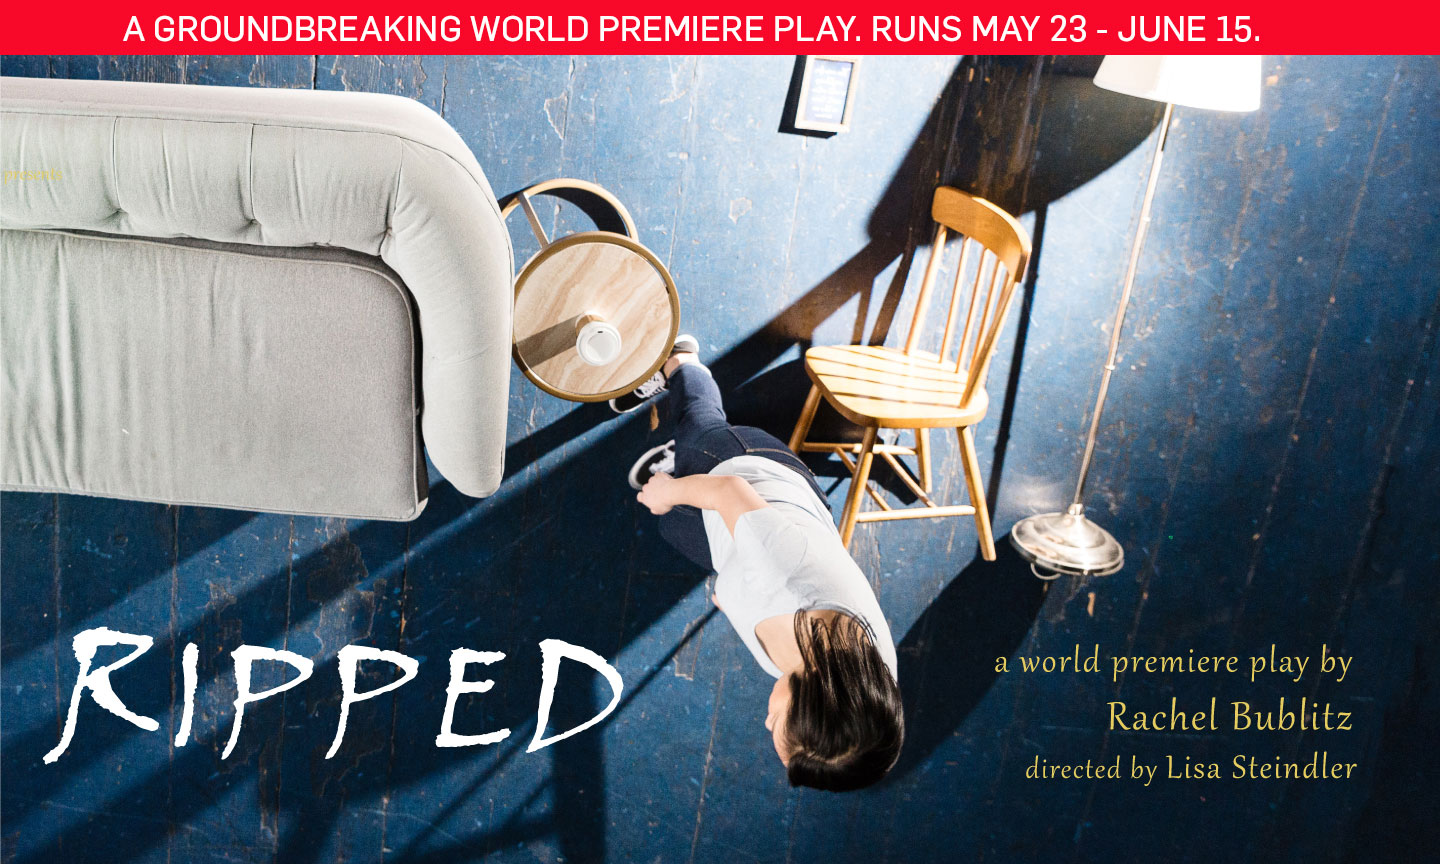 Postcard for RIPPED shows overhead shot of a person with long, dark hair next to a gray sofa , sifde table, overturned wooden dining chair and overturned lamp.